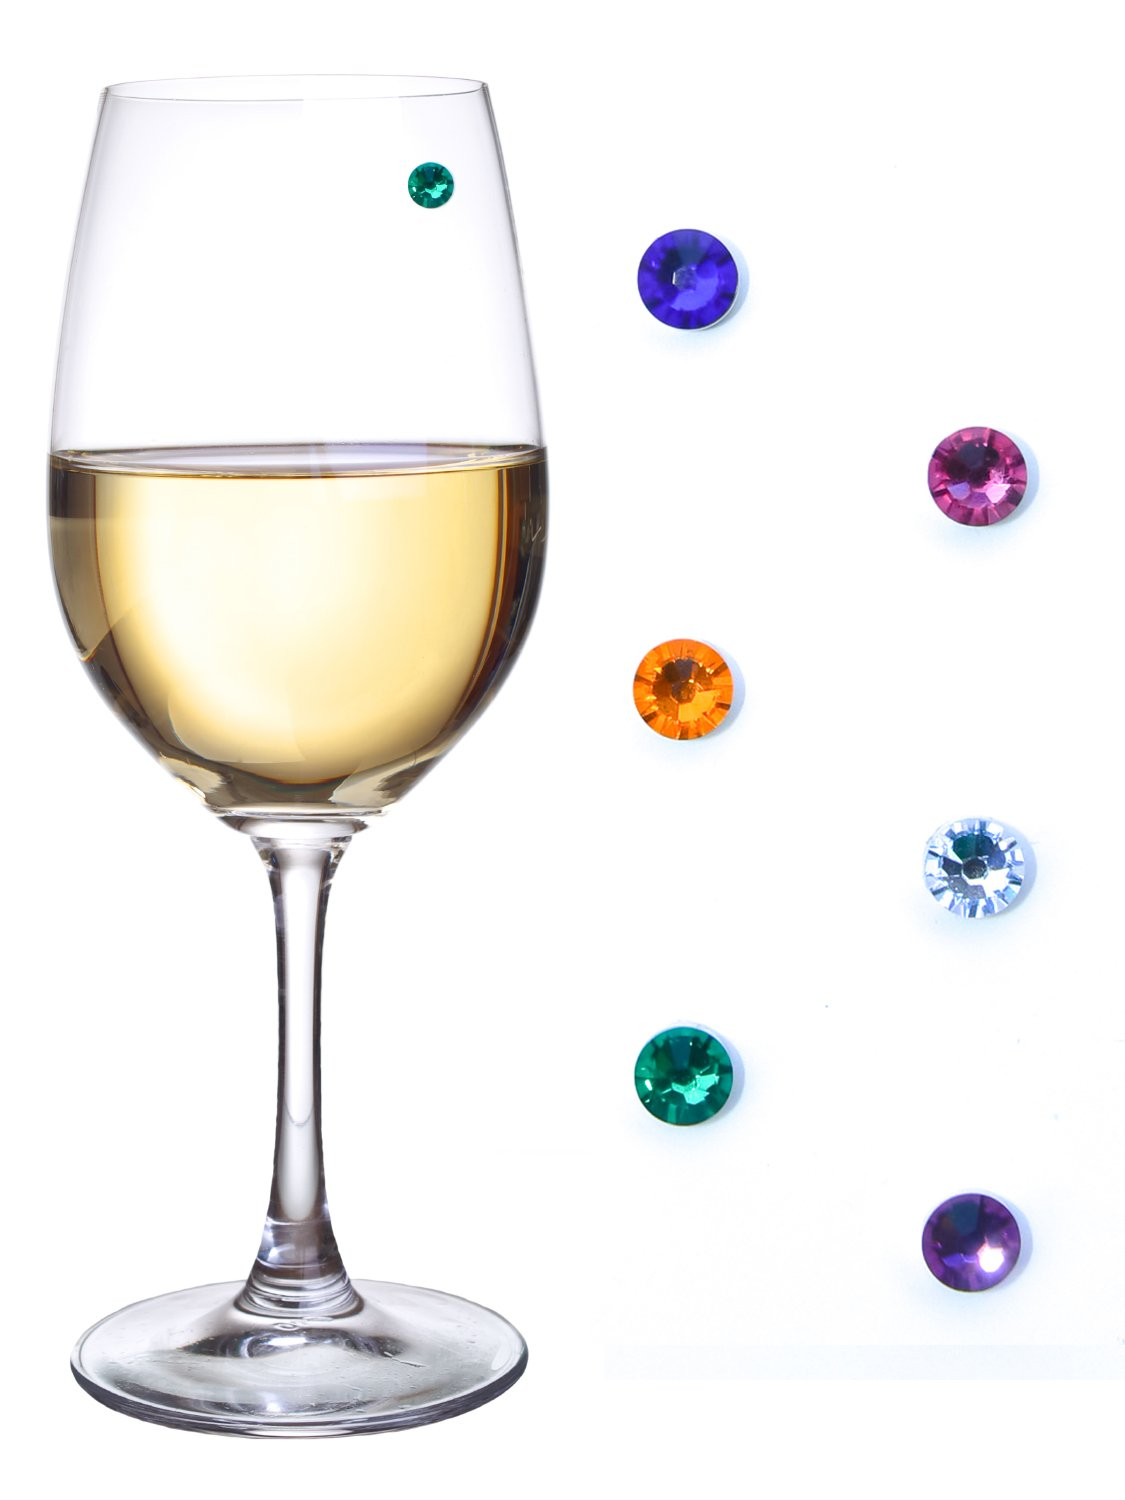 Swarovski Crystal Magnetic Wine Glass Charms for Stemless Glasses, Champagne Flutes & More - Set of 6 Jewel Colors by Simply Charmed